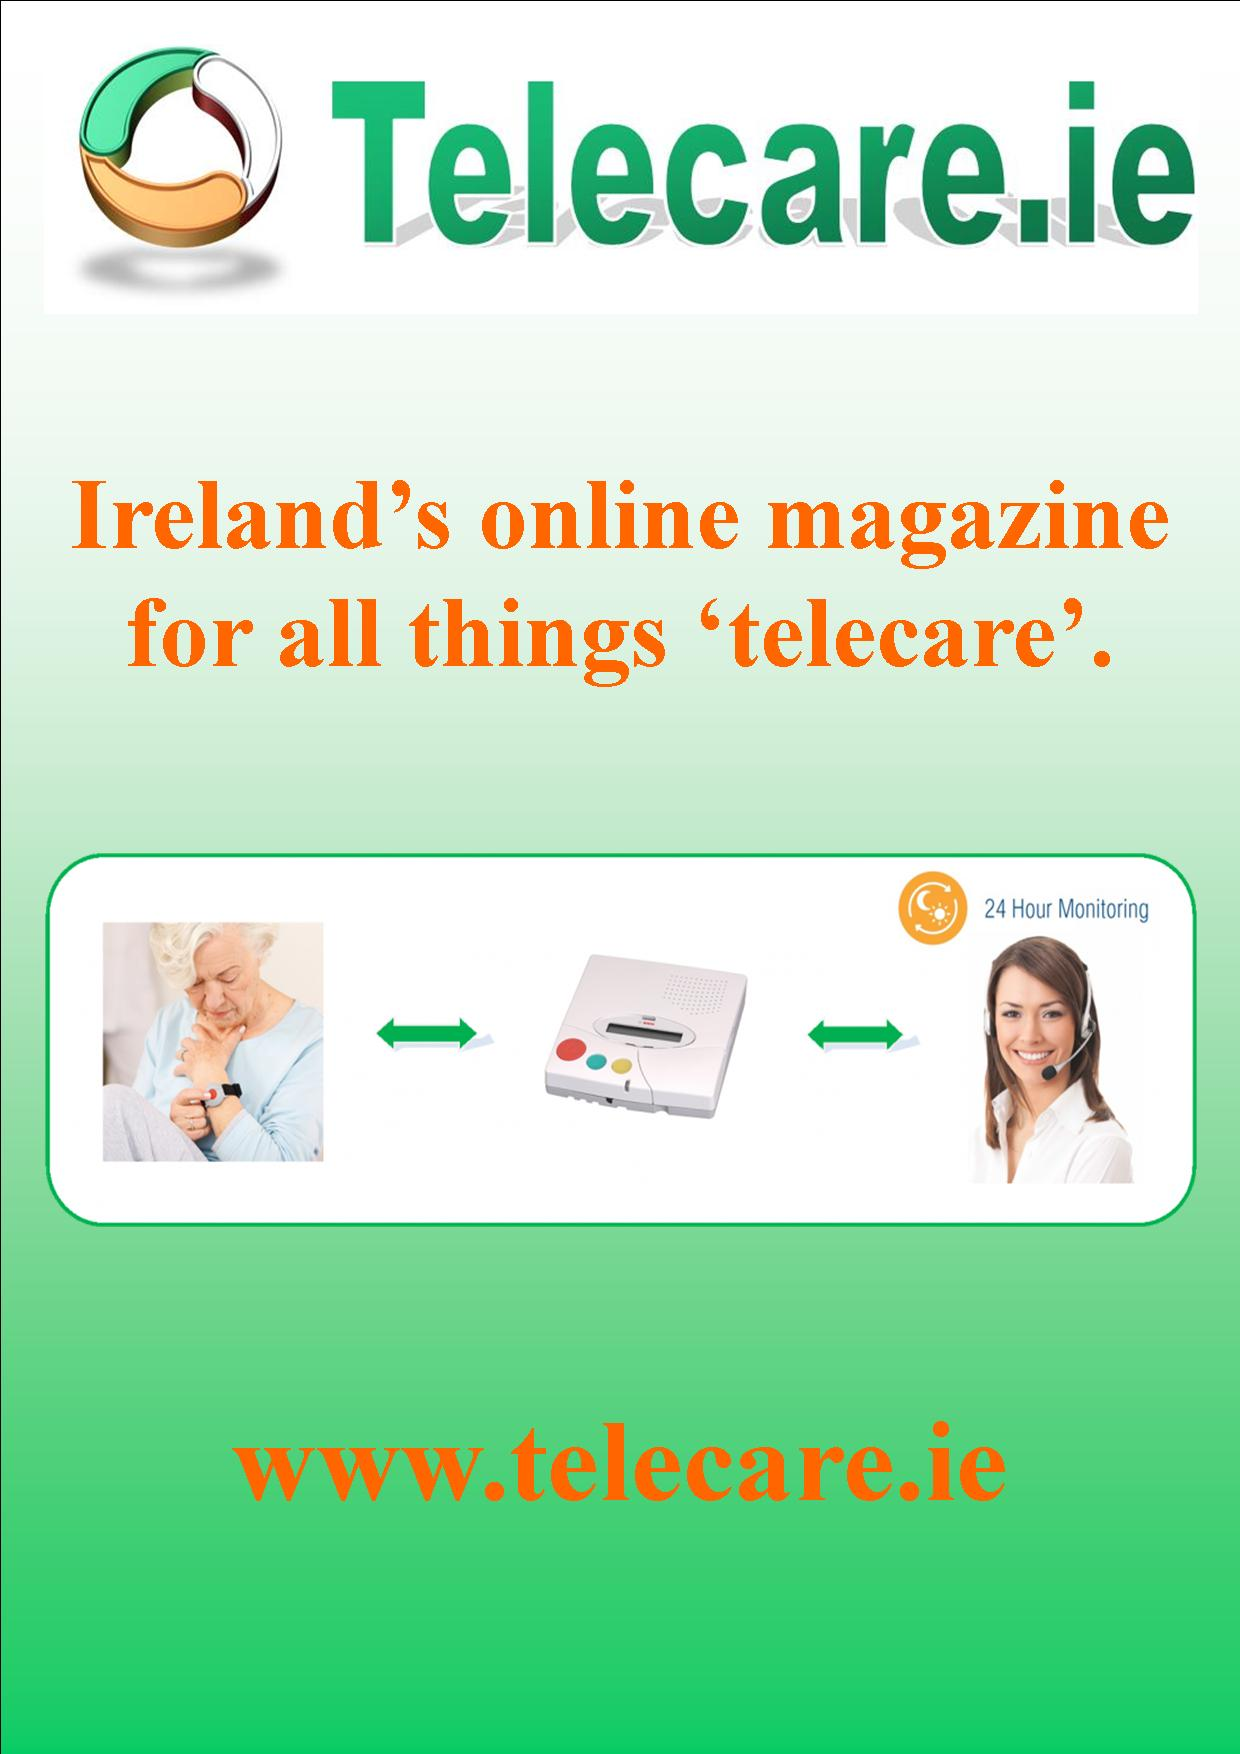 telecare.ie Advert